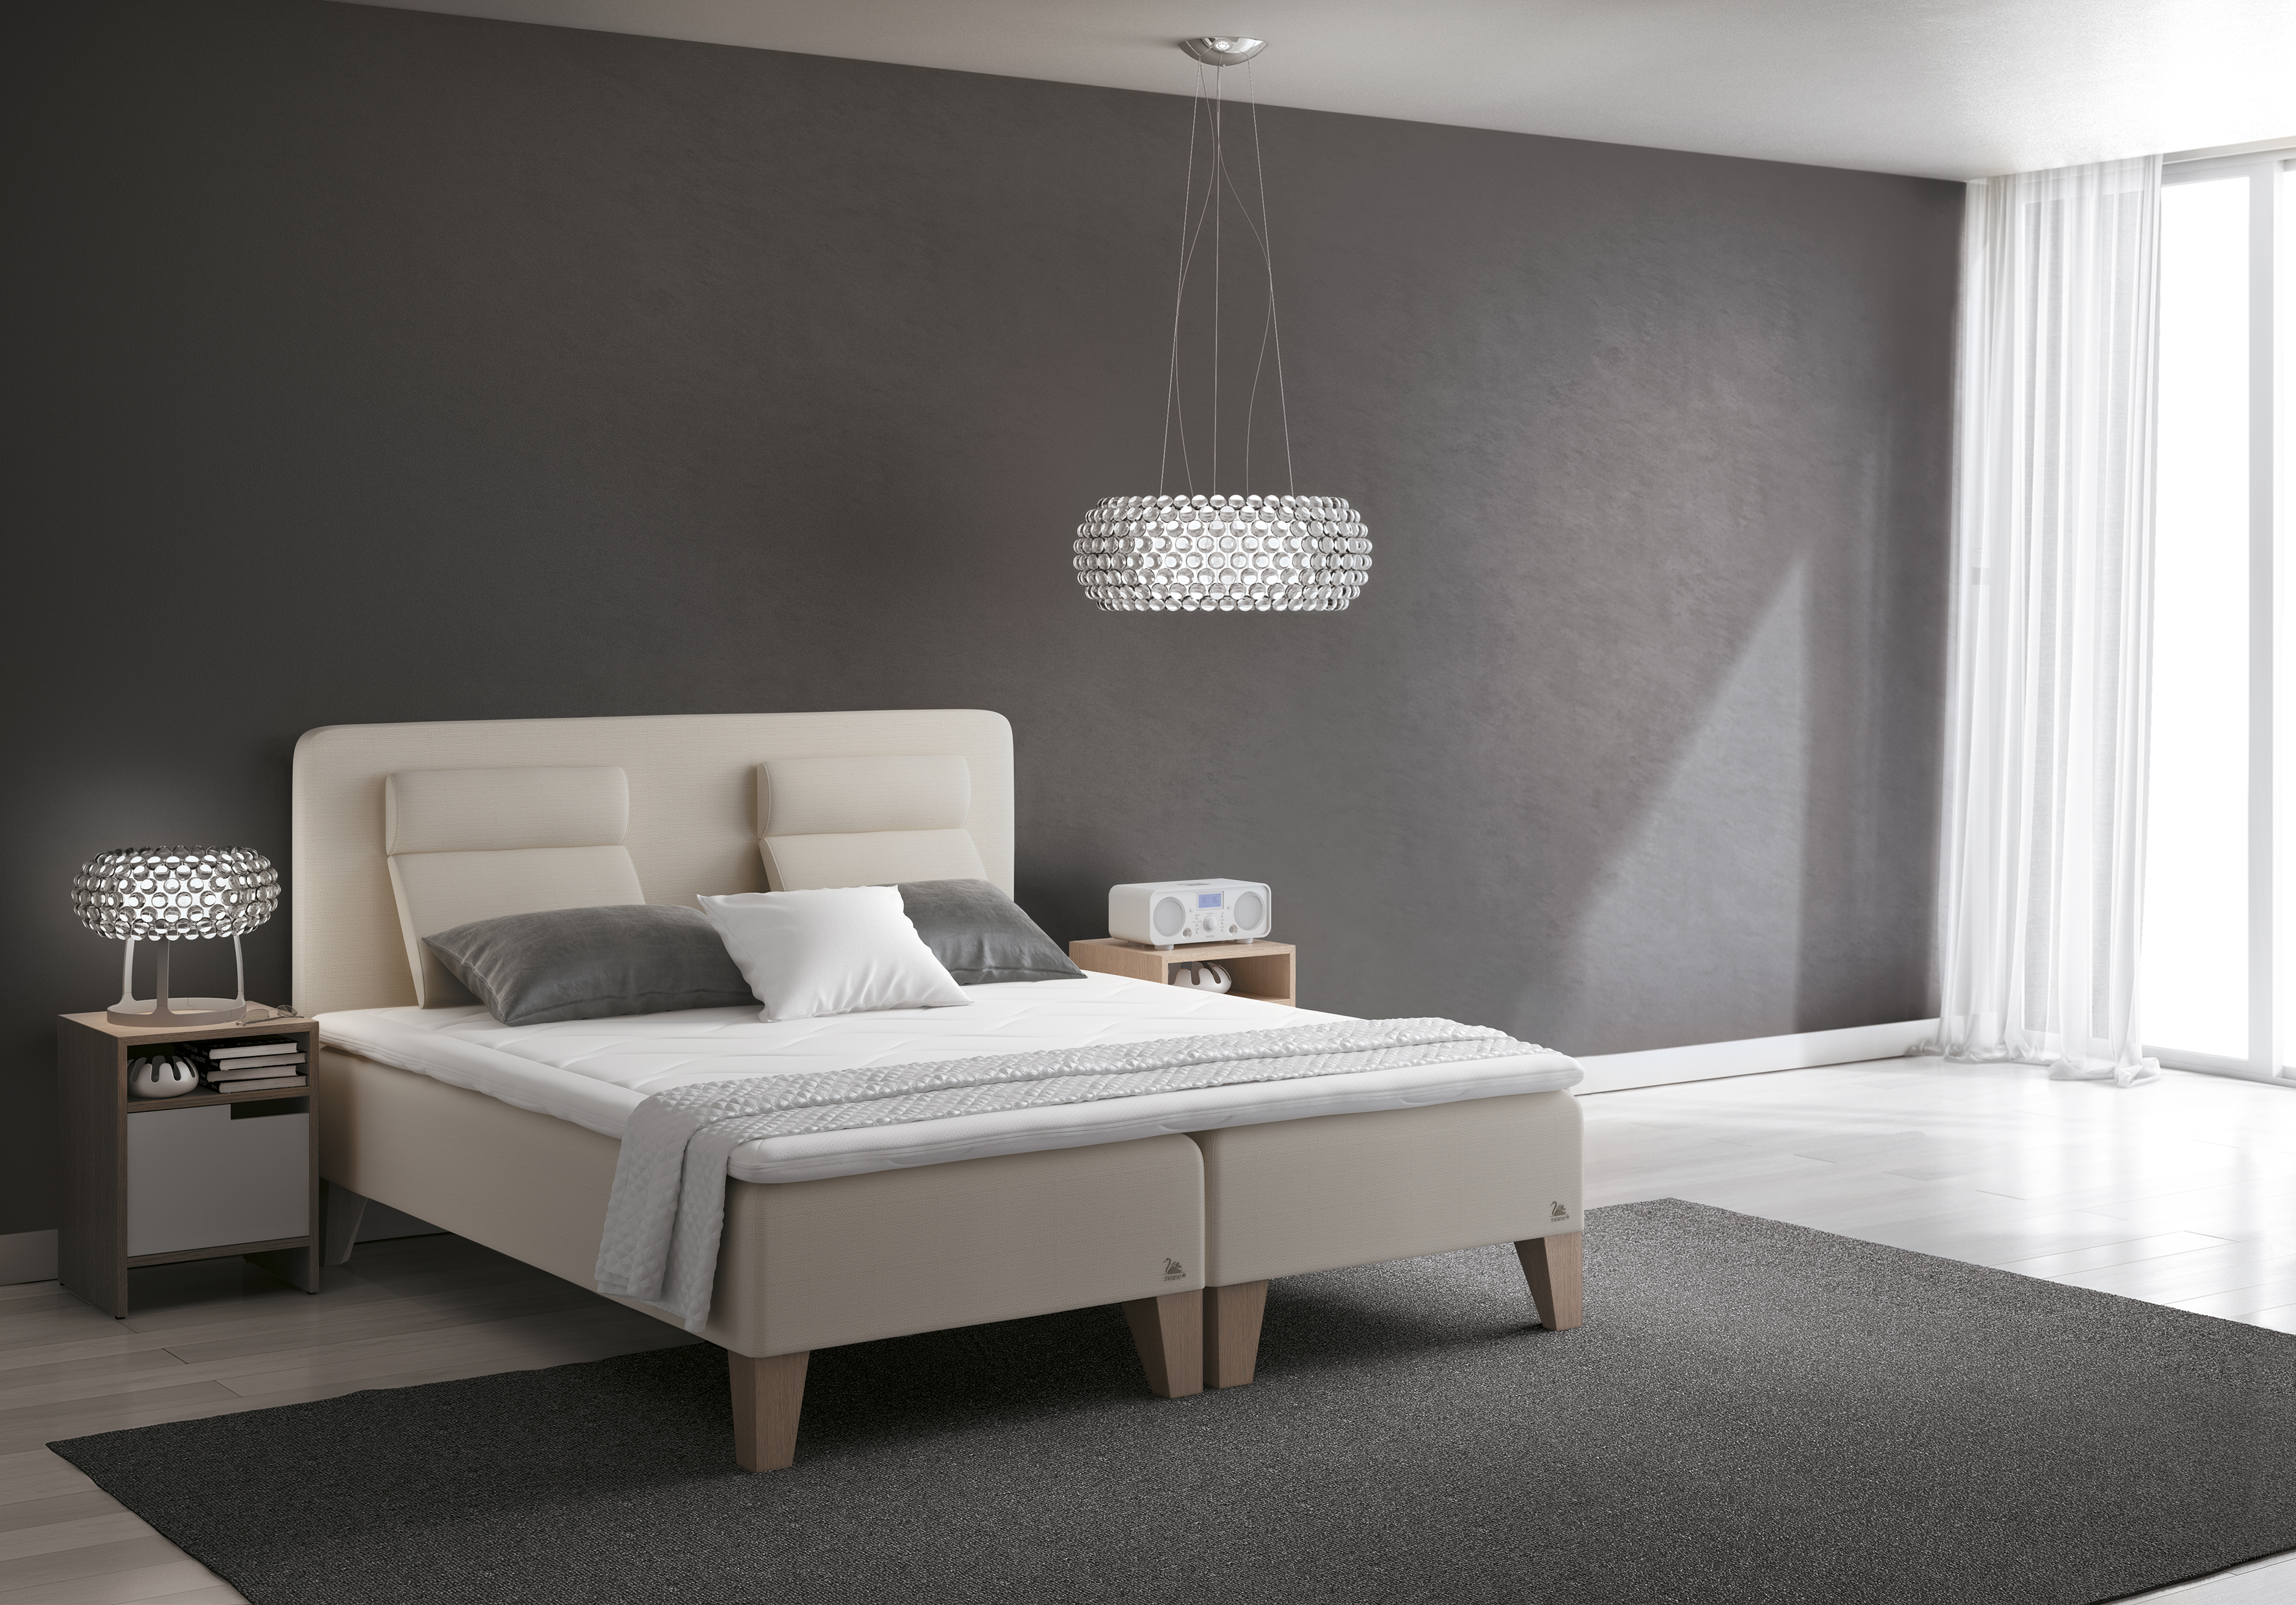 boxspringbetten vor dem esche. Black Bedroom Furniture Sets. Home Design Ideas